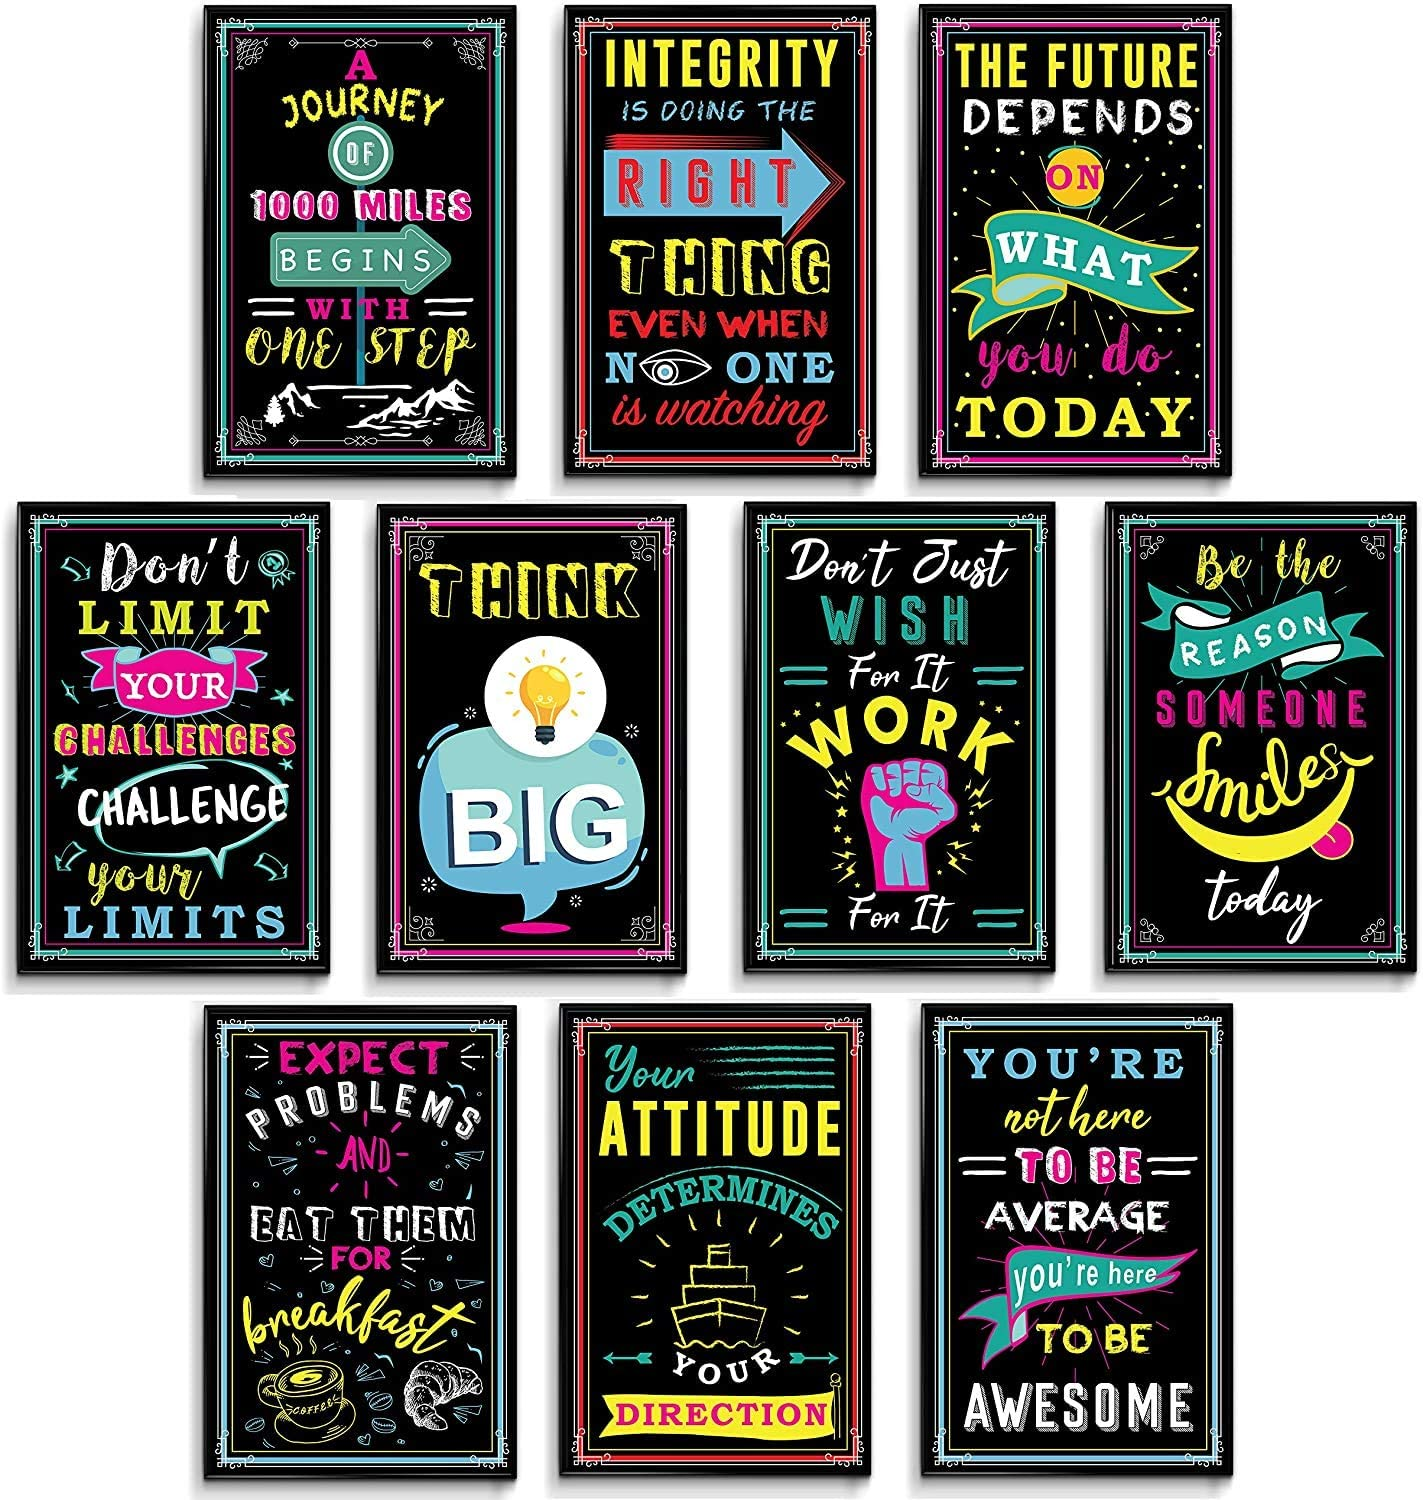 Motivational Posters for Classroom, Inspirational Posters for Teens, Classroom Posters, Office Decorations, Motivational Posters for Office, Inspirational Quote Wall Art Set of 10 Prints 11x17 in.